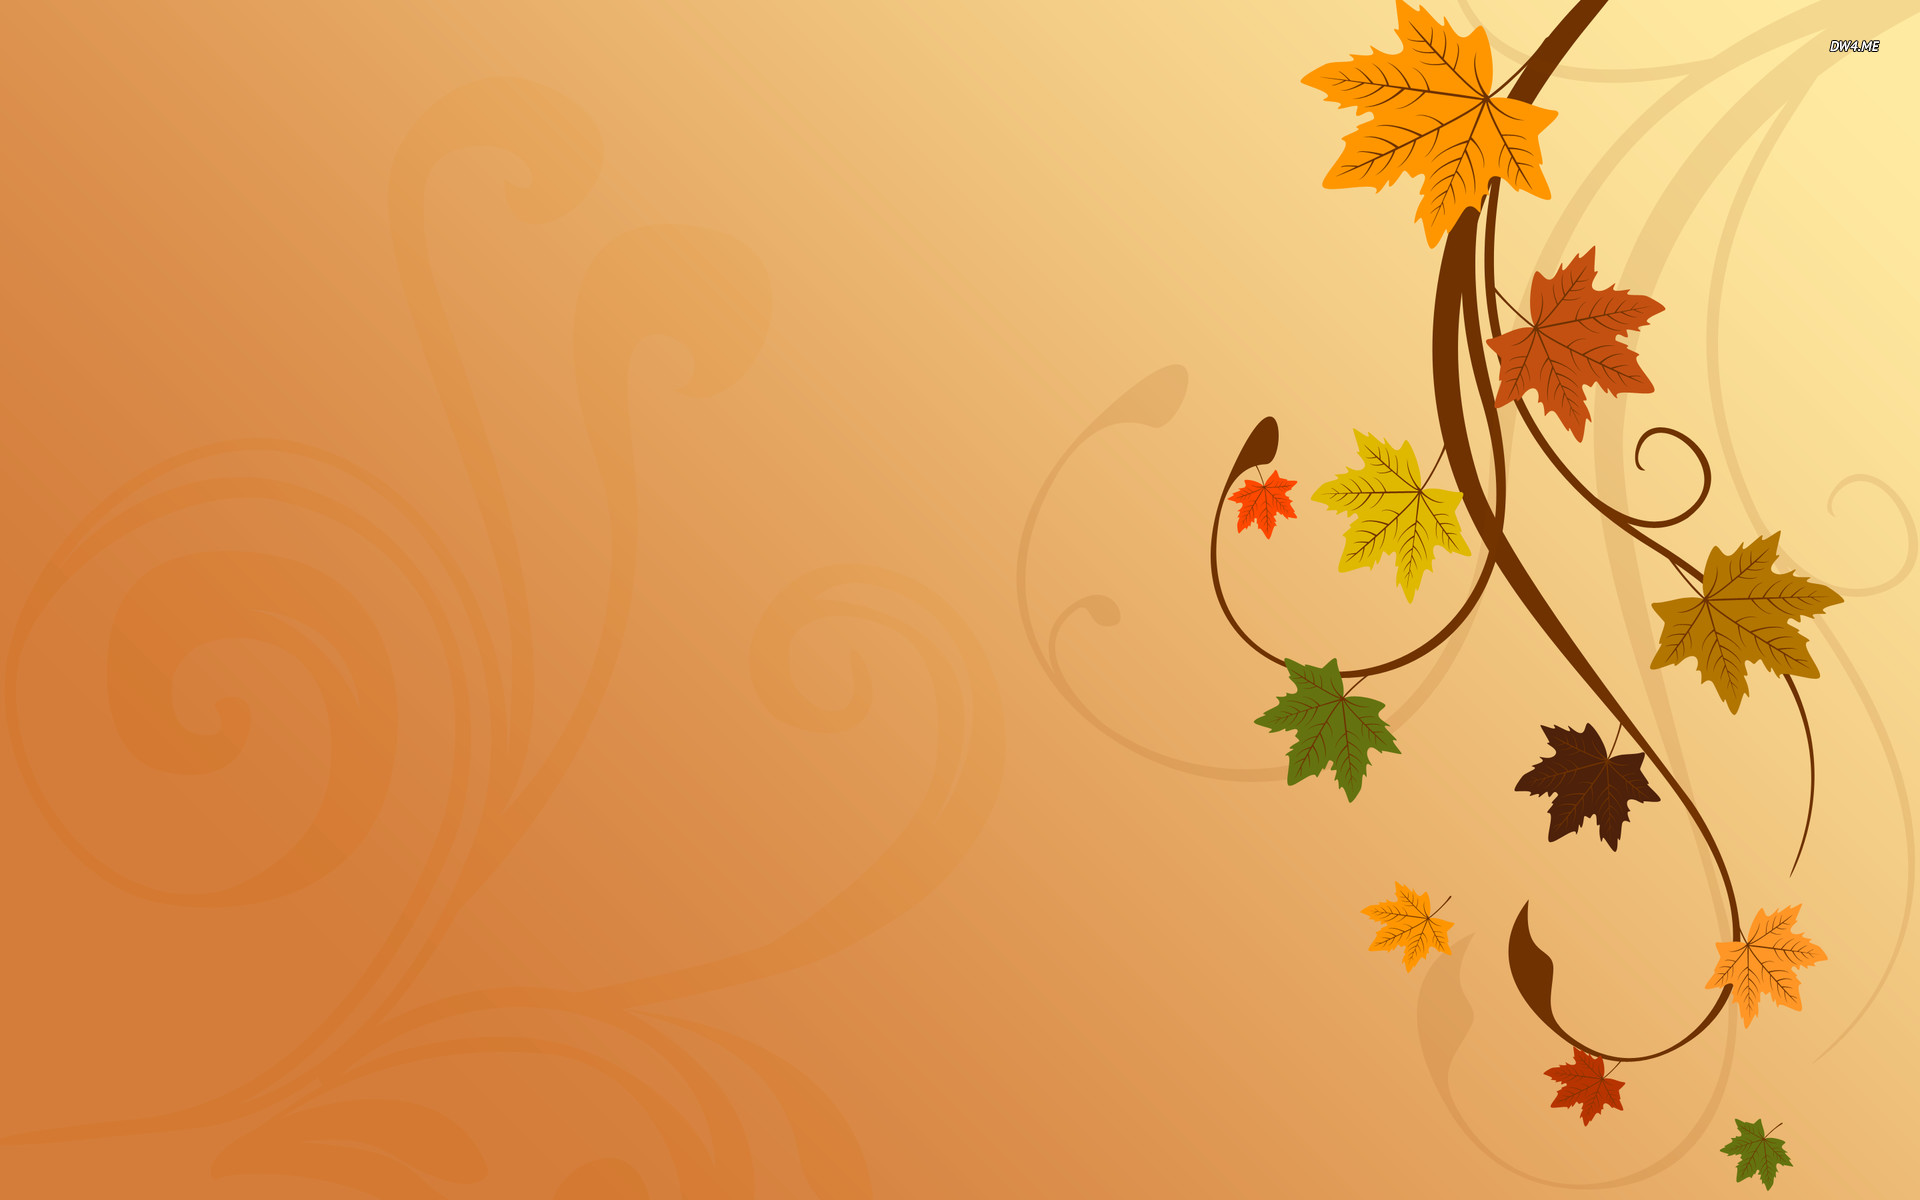 Cute Wallpapers For A Computer Turkey Wallpaper Thanksgiving 183 ①